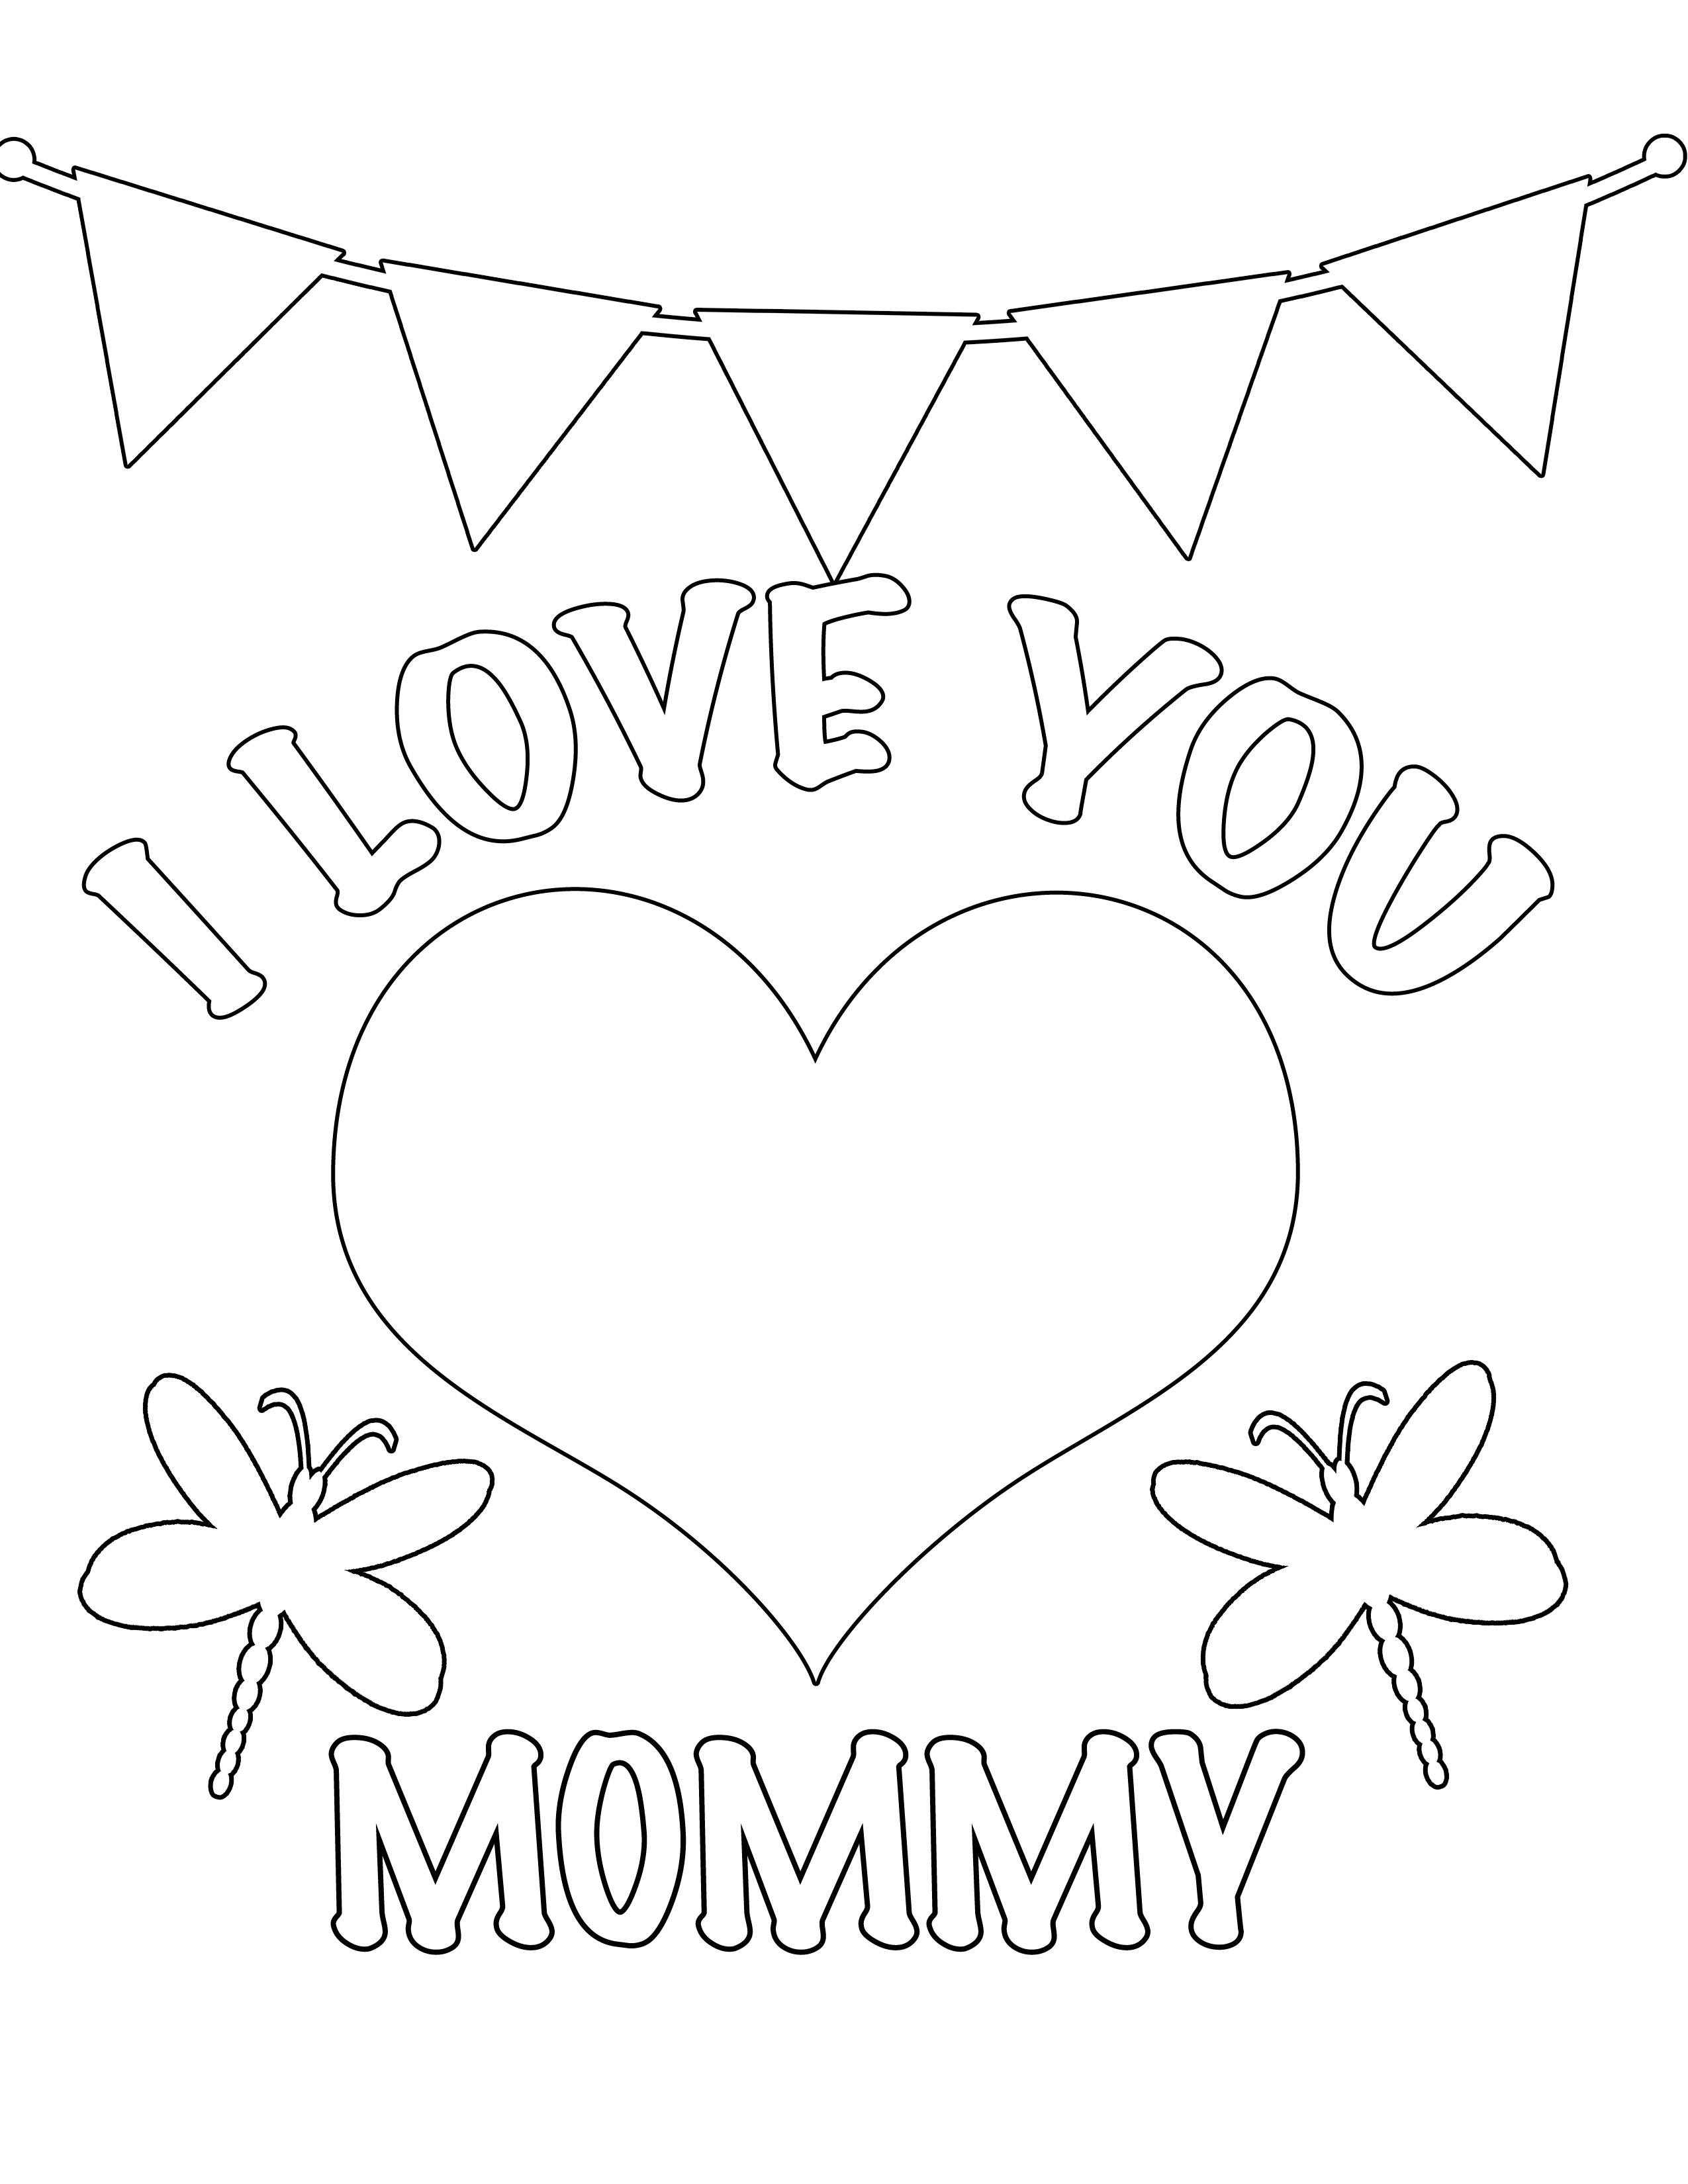 Free Printable Preschool Coloring Pages Best Coloring Free Coloring Pages Preschool